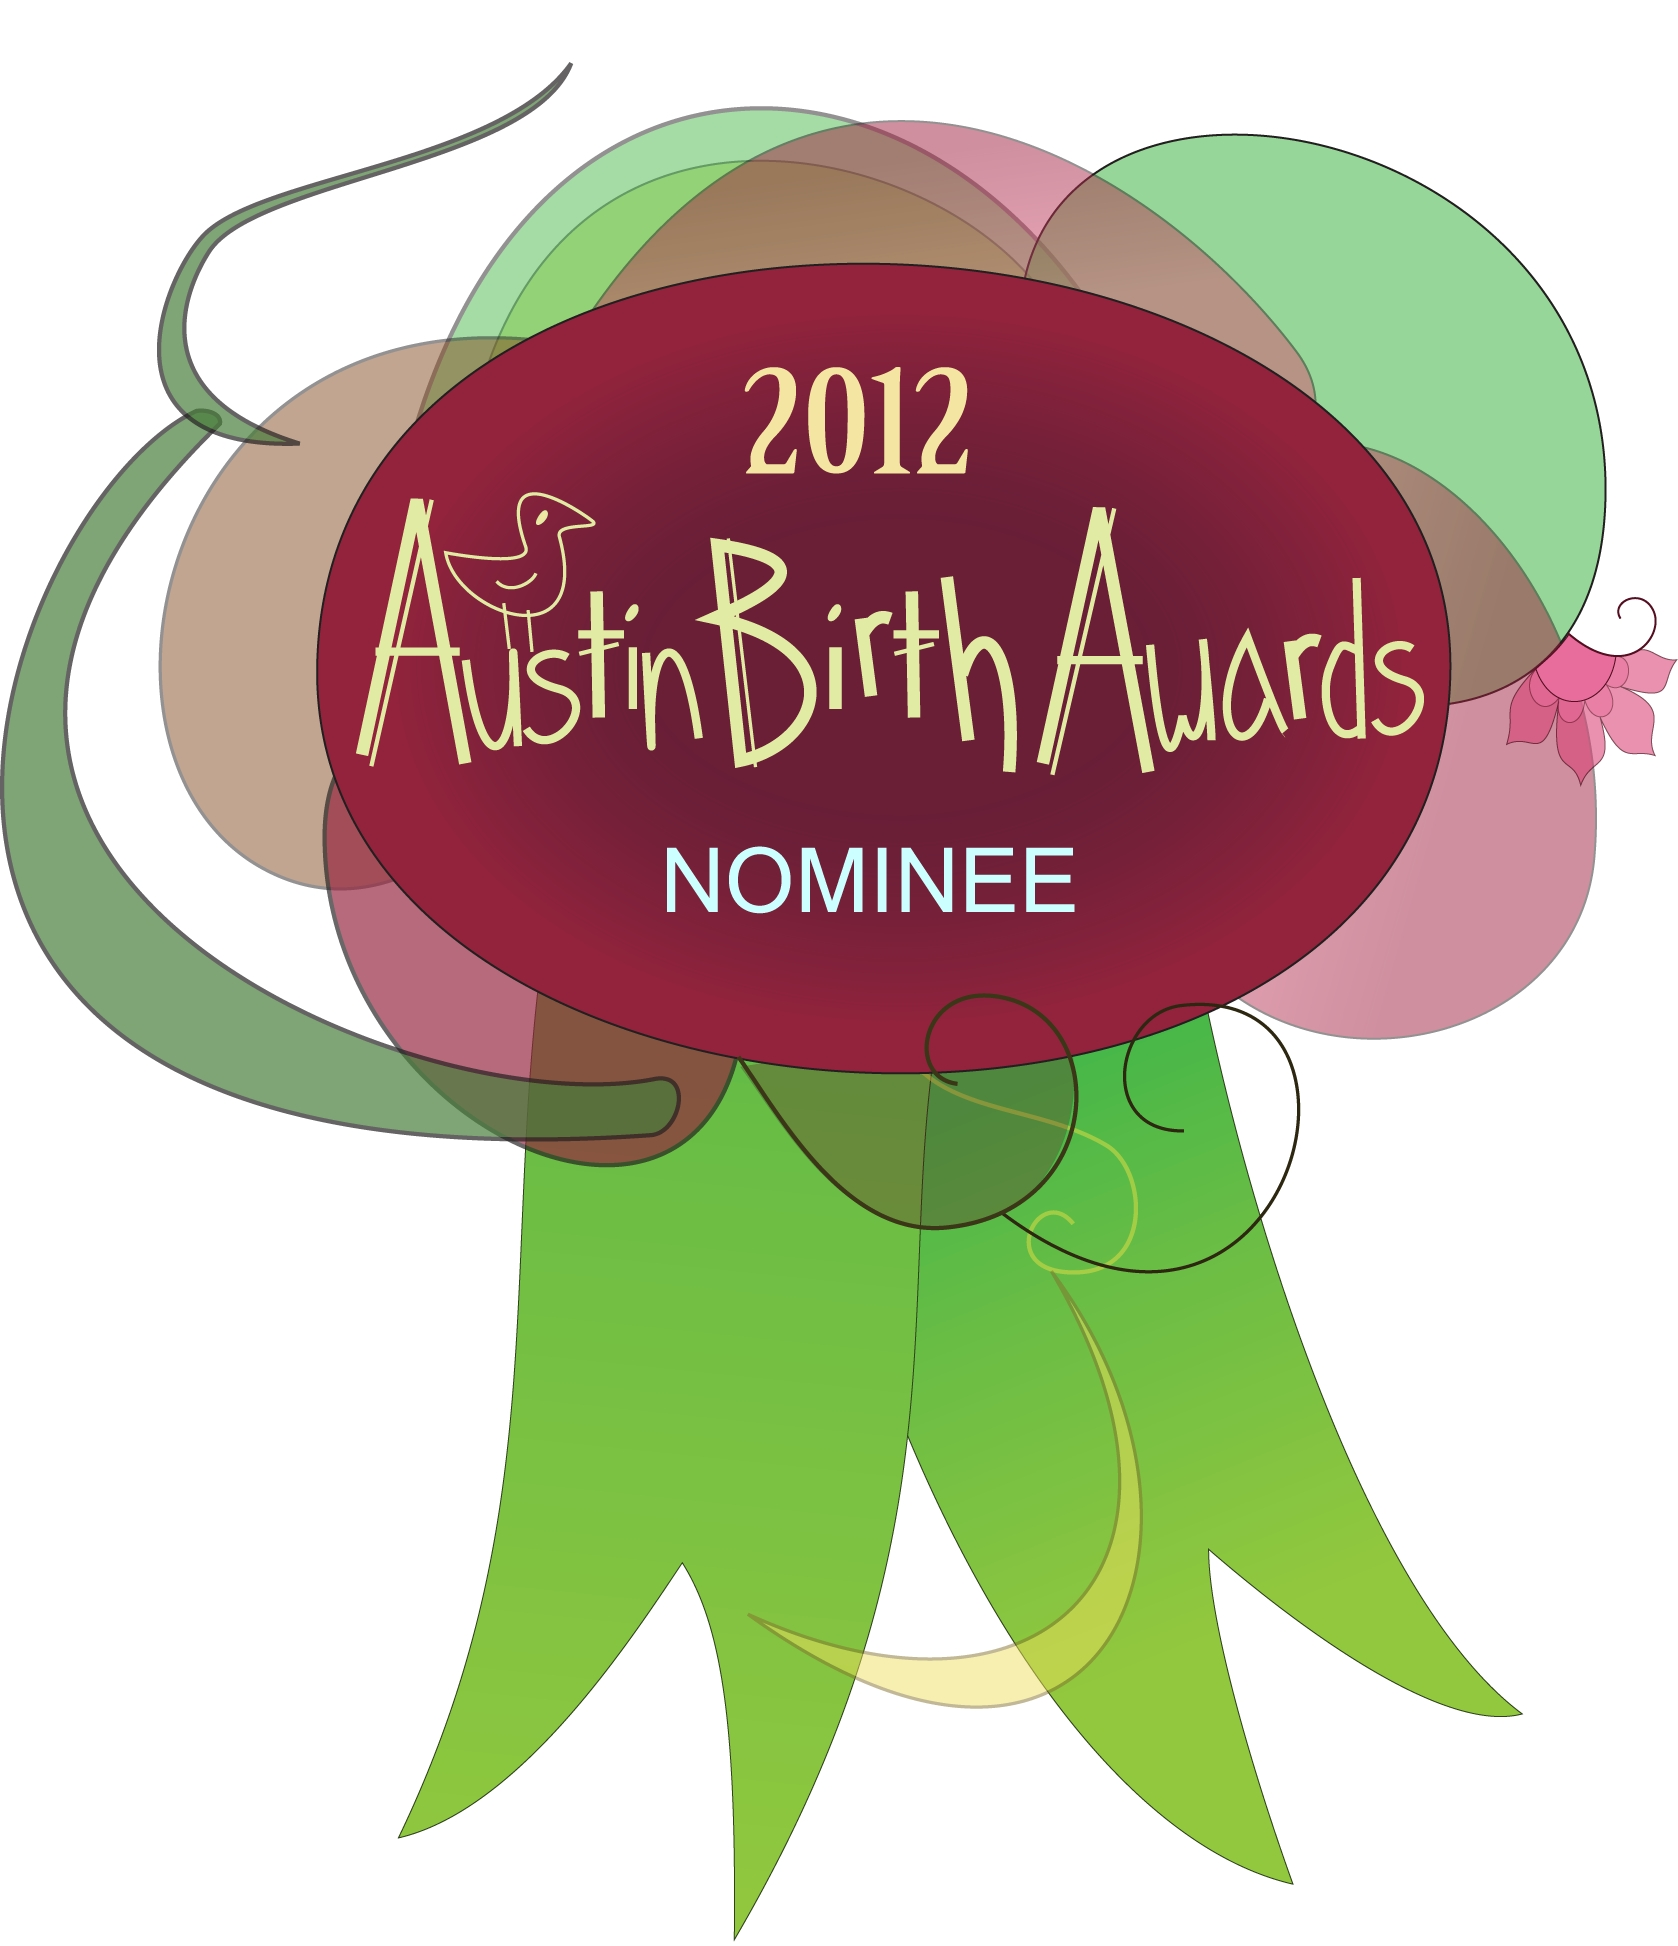 Vote now for your favorite Austin birth pros!